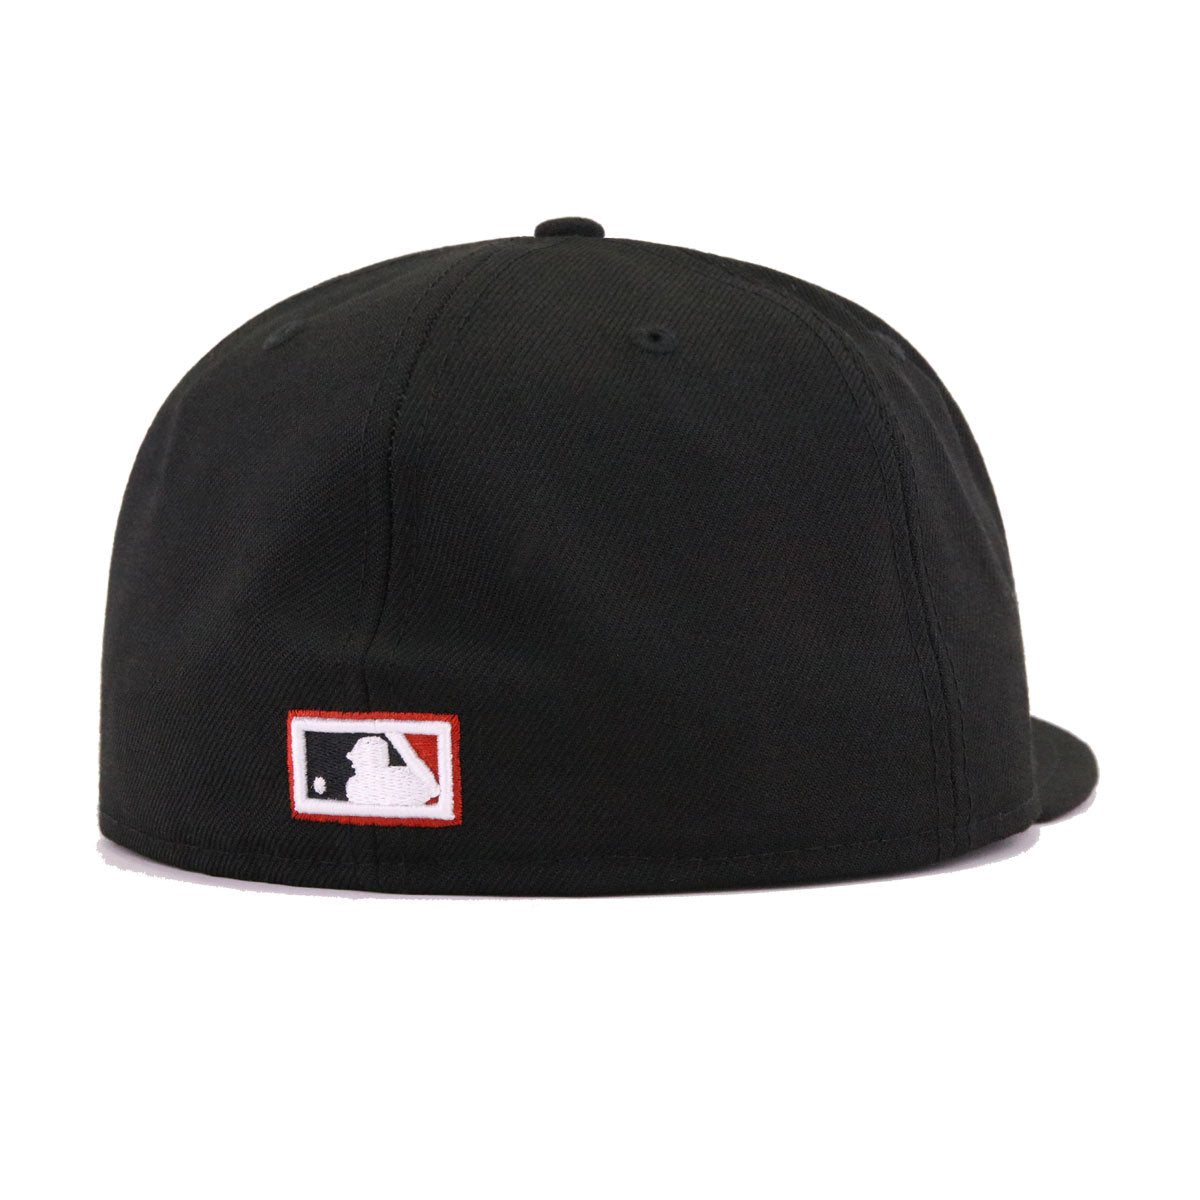 Houston Astros Black Terra Cotta Cooperstown New Era 59Fifty Fitted